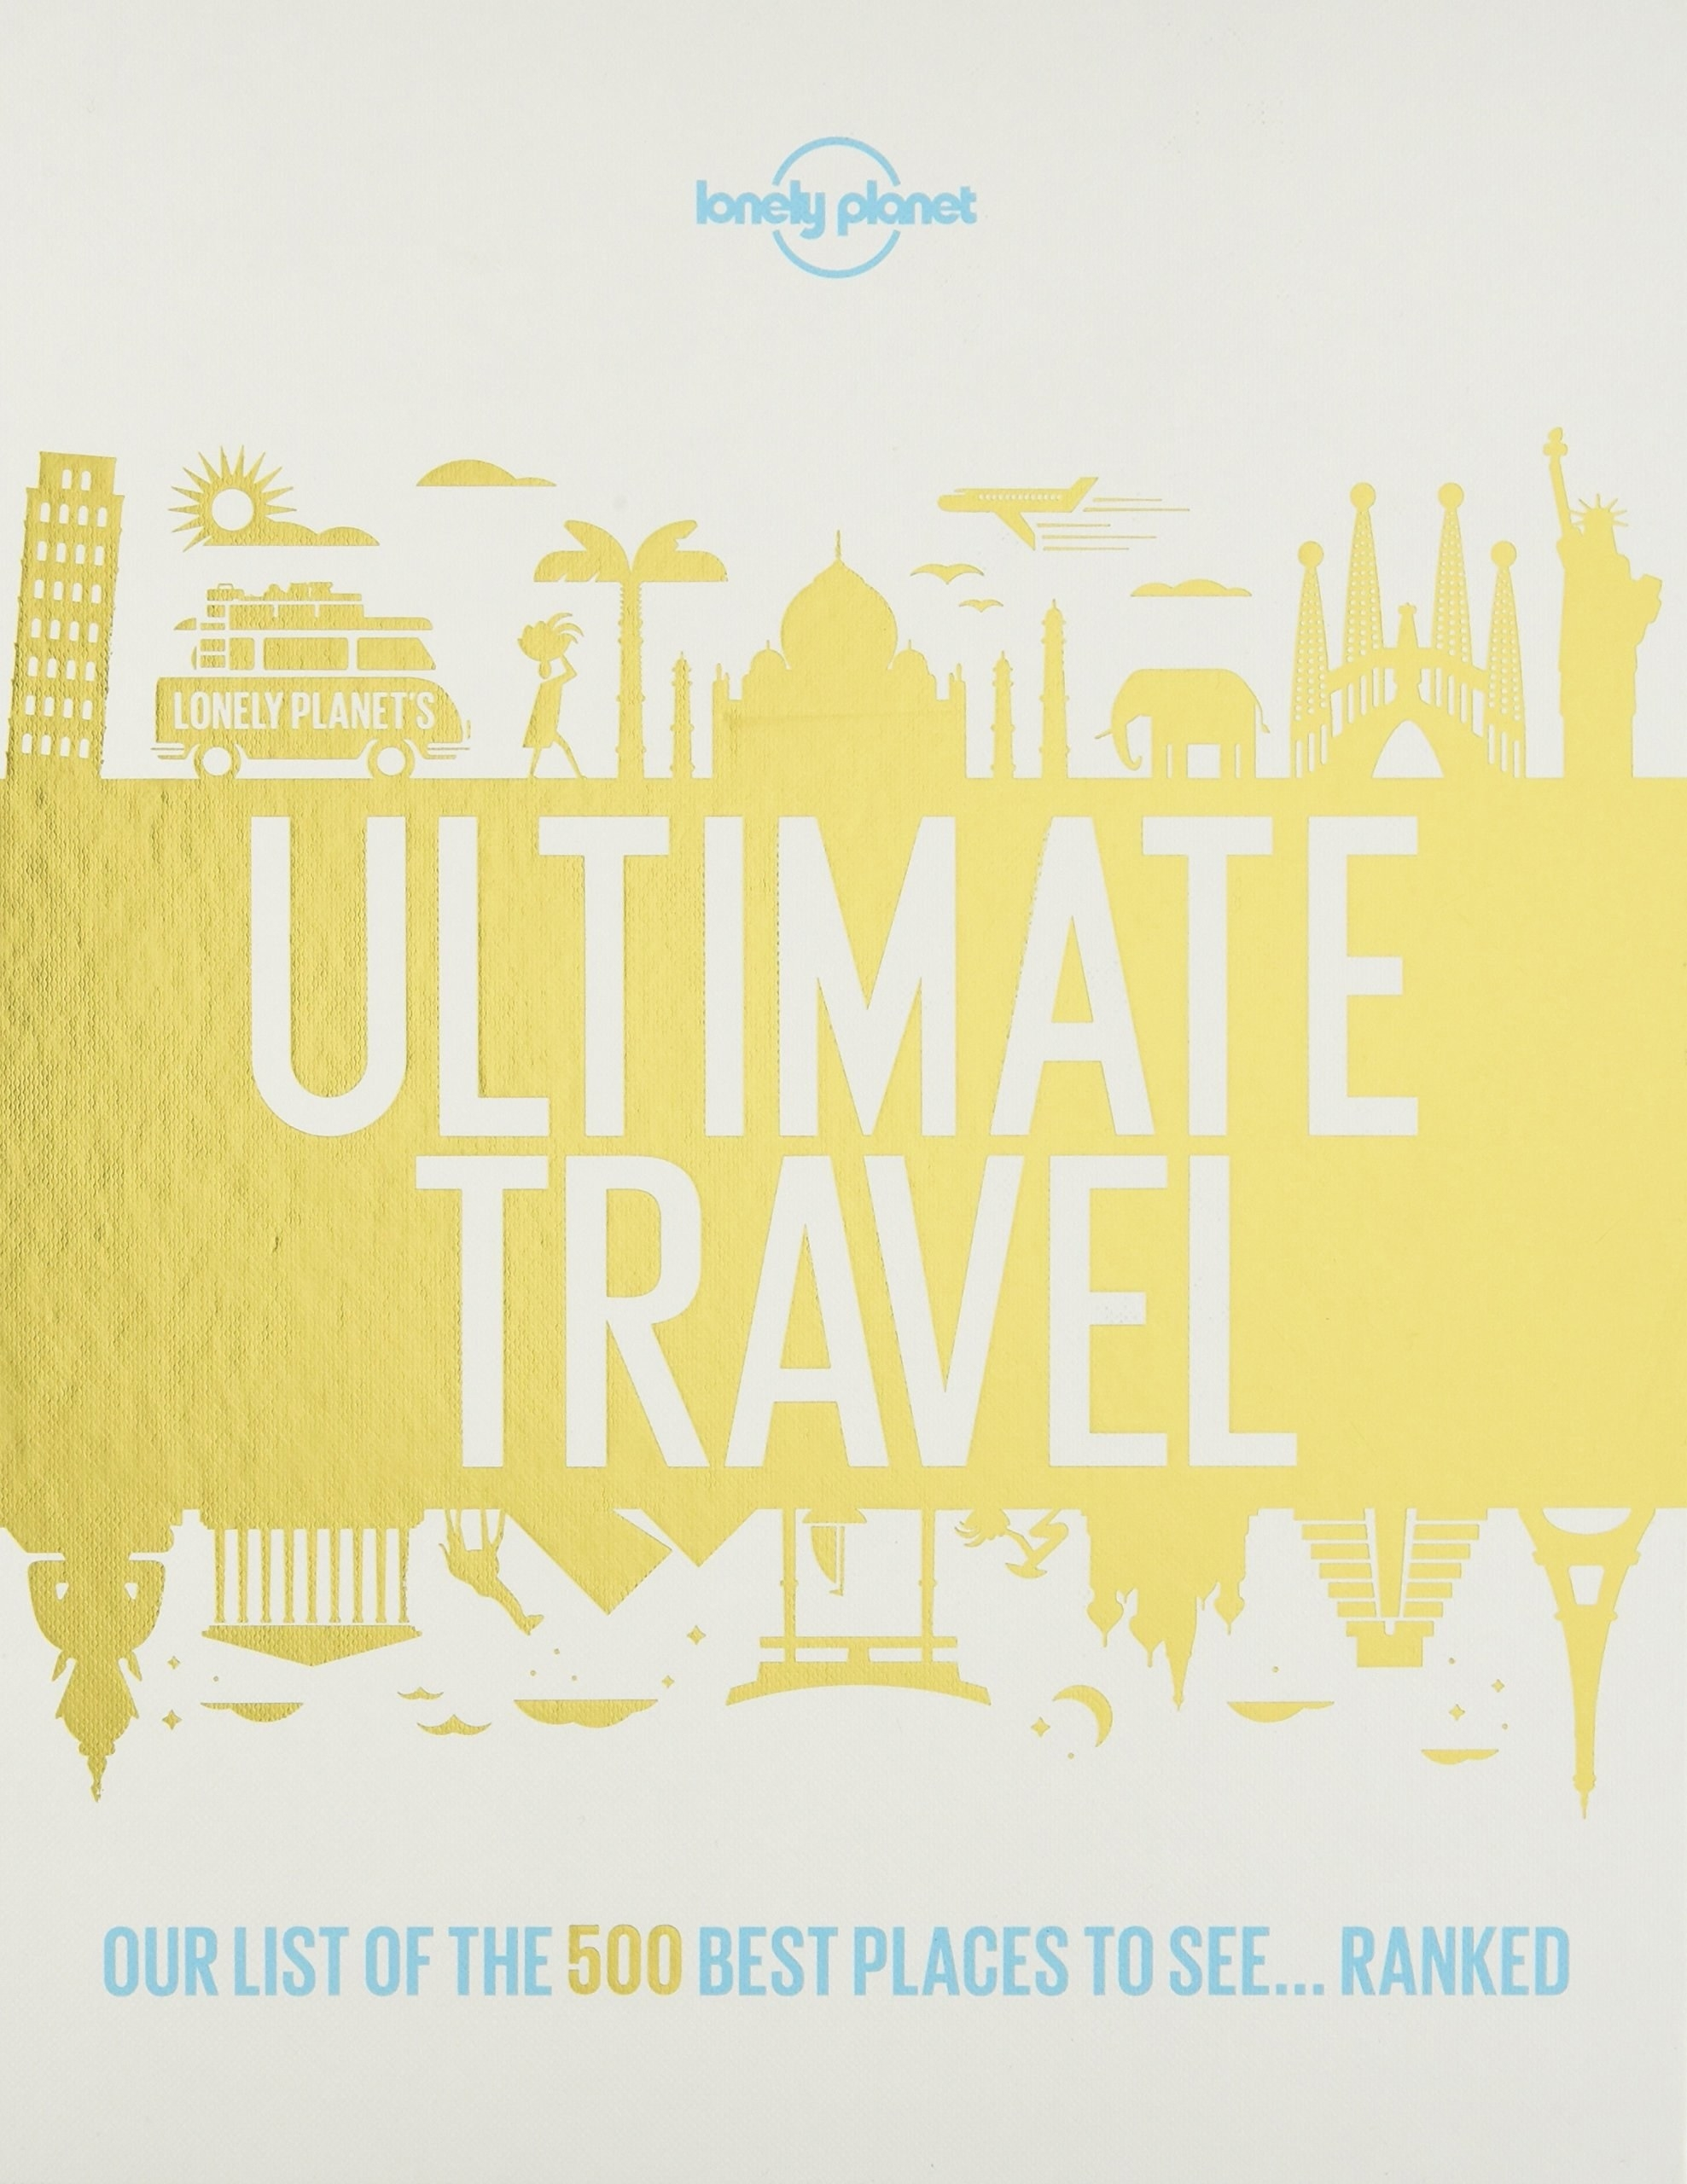 The cover of Lonely Planet's Ultimate Travel: Our List of the 500 Best Places to See... Ranked